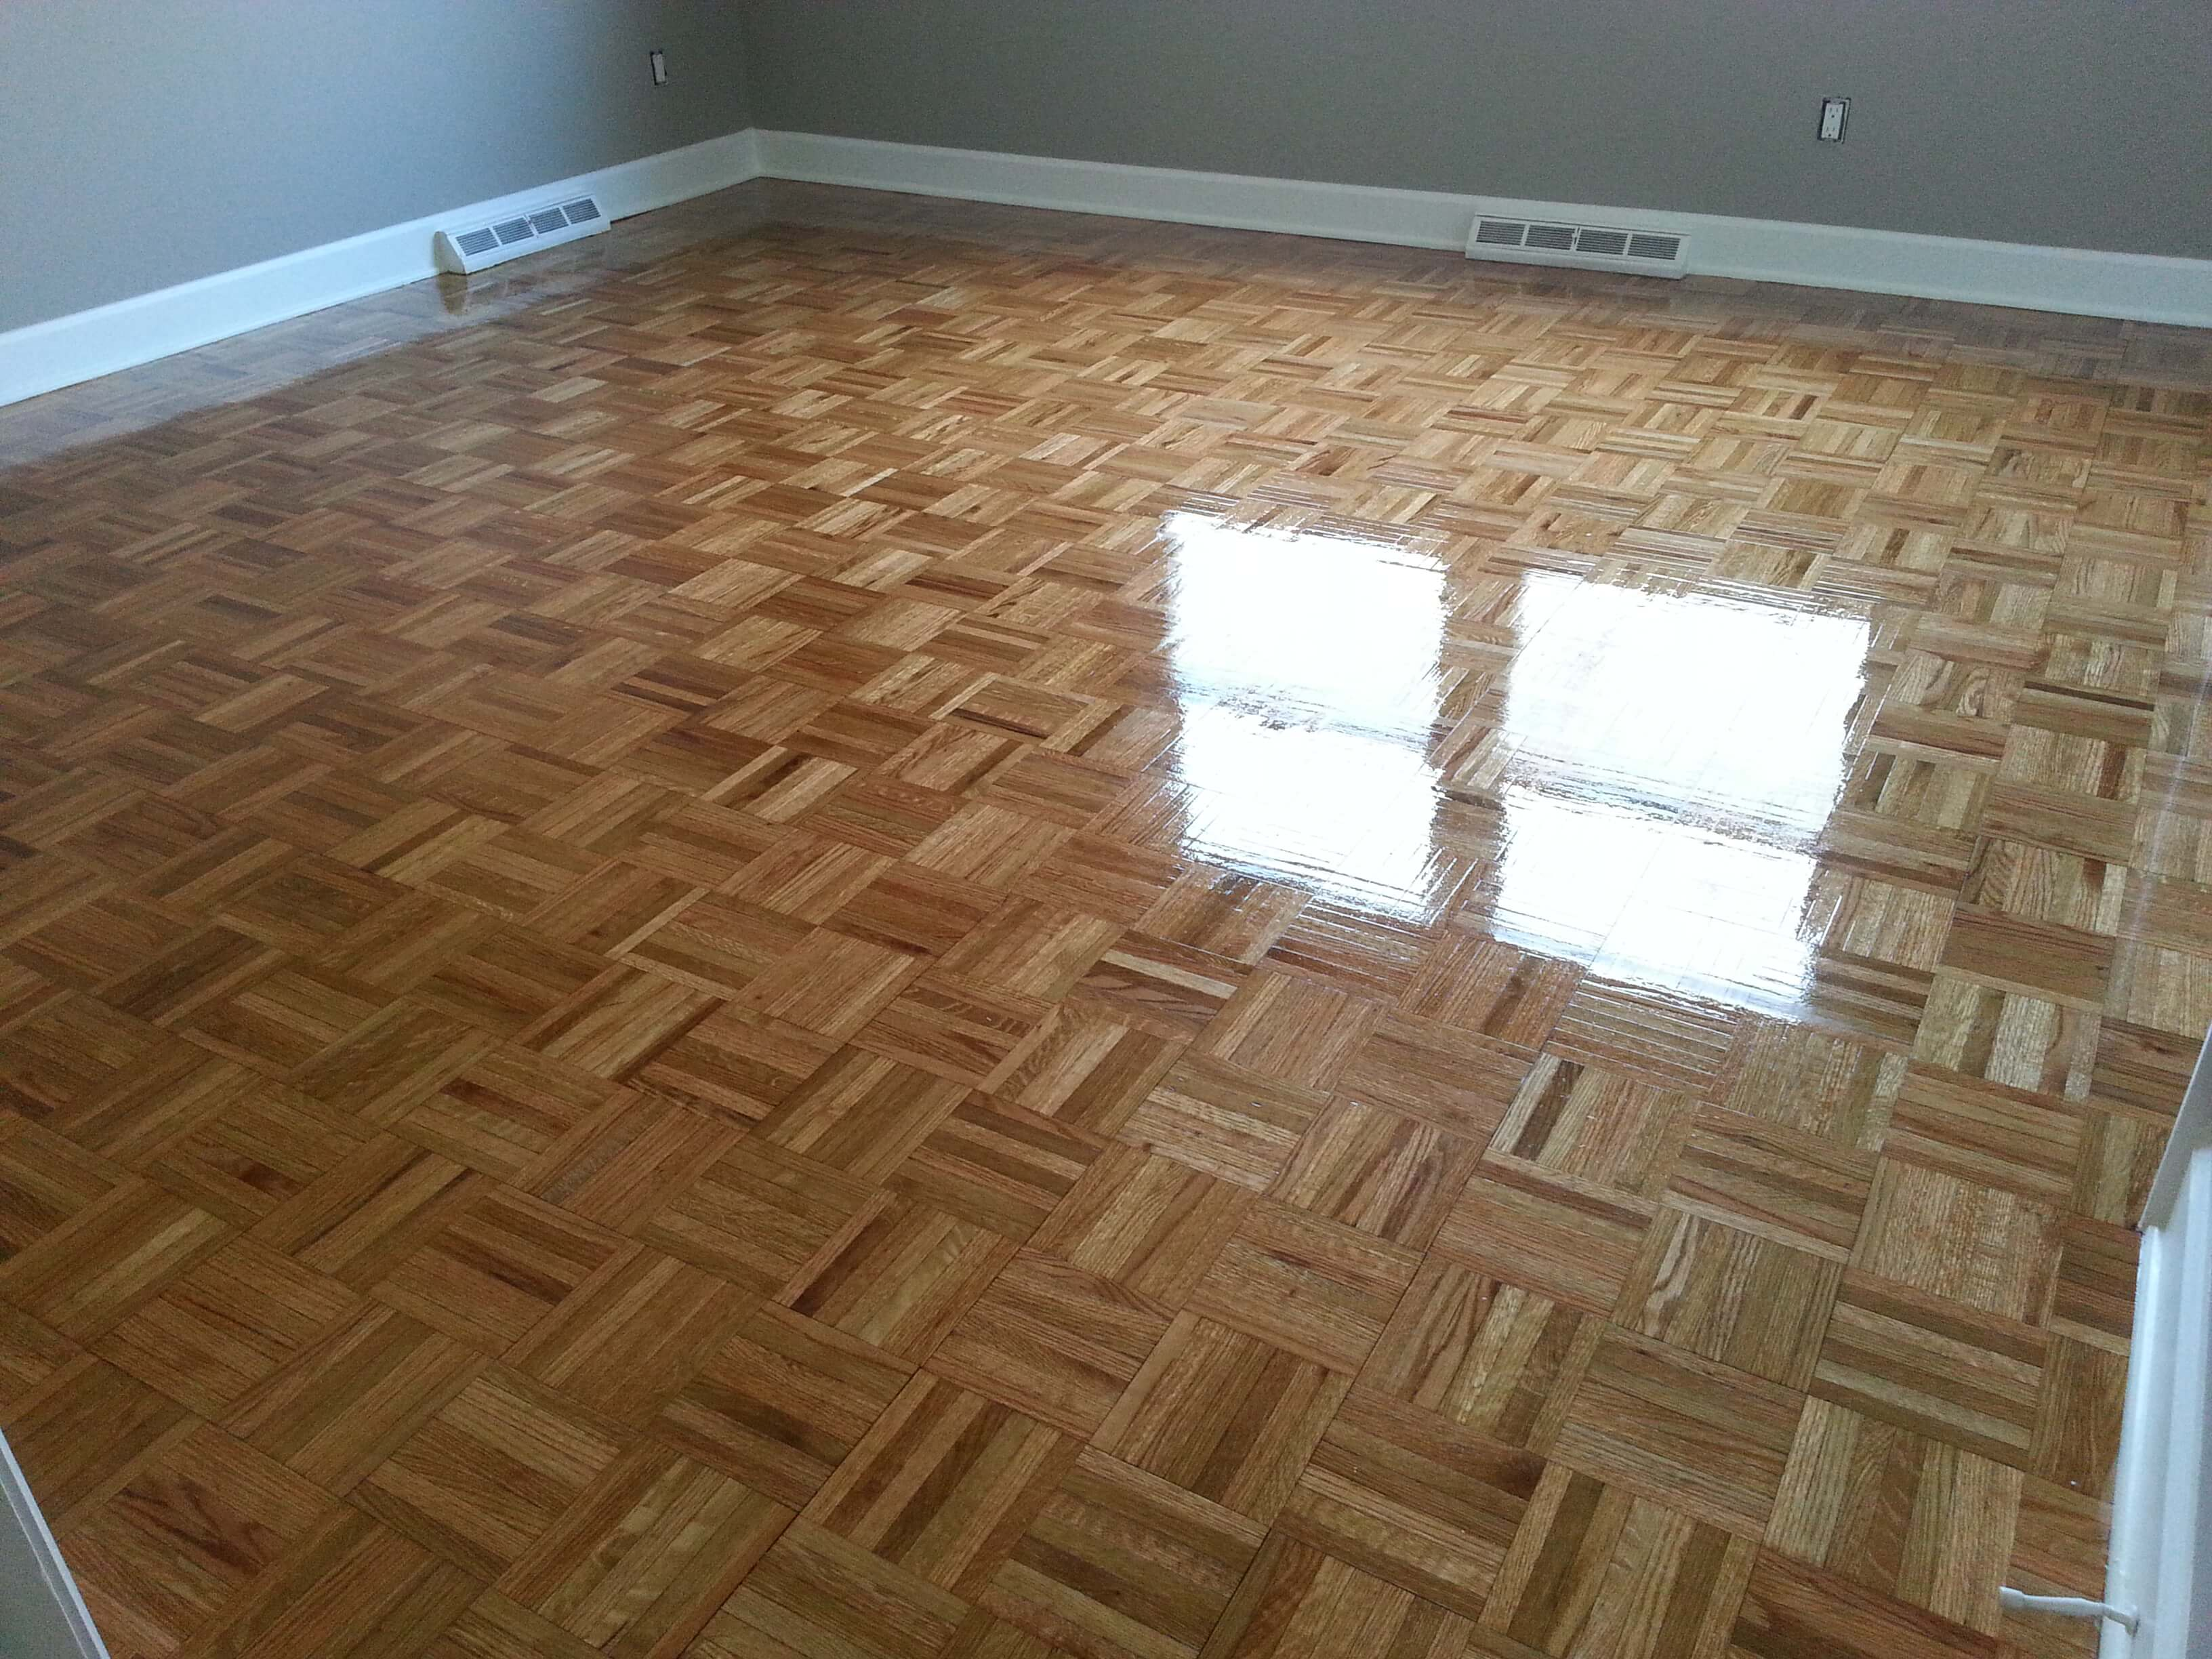 A refinished parquet wood floor